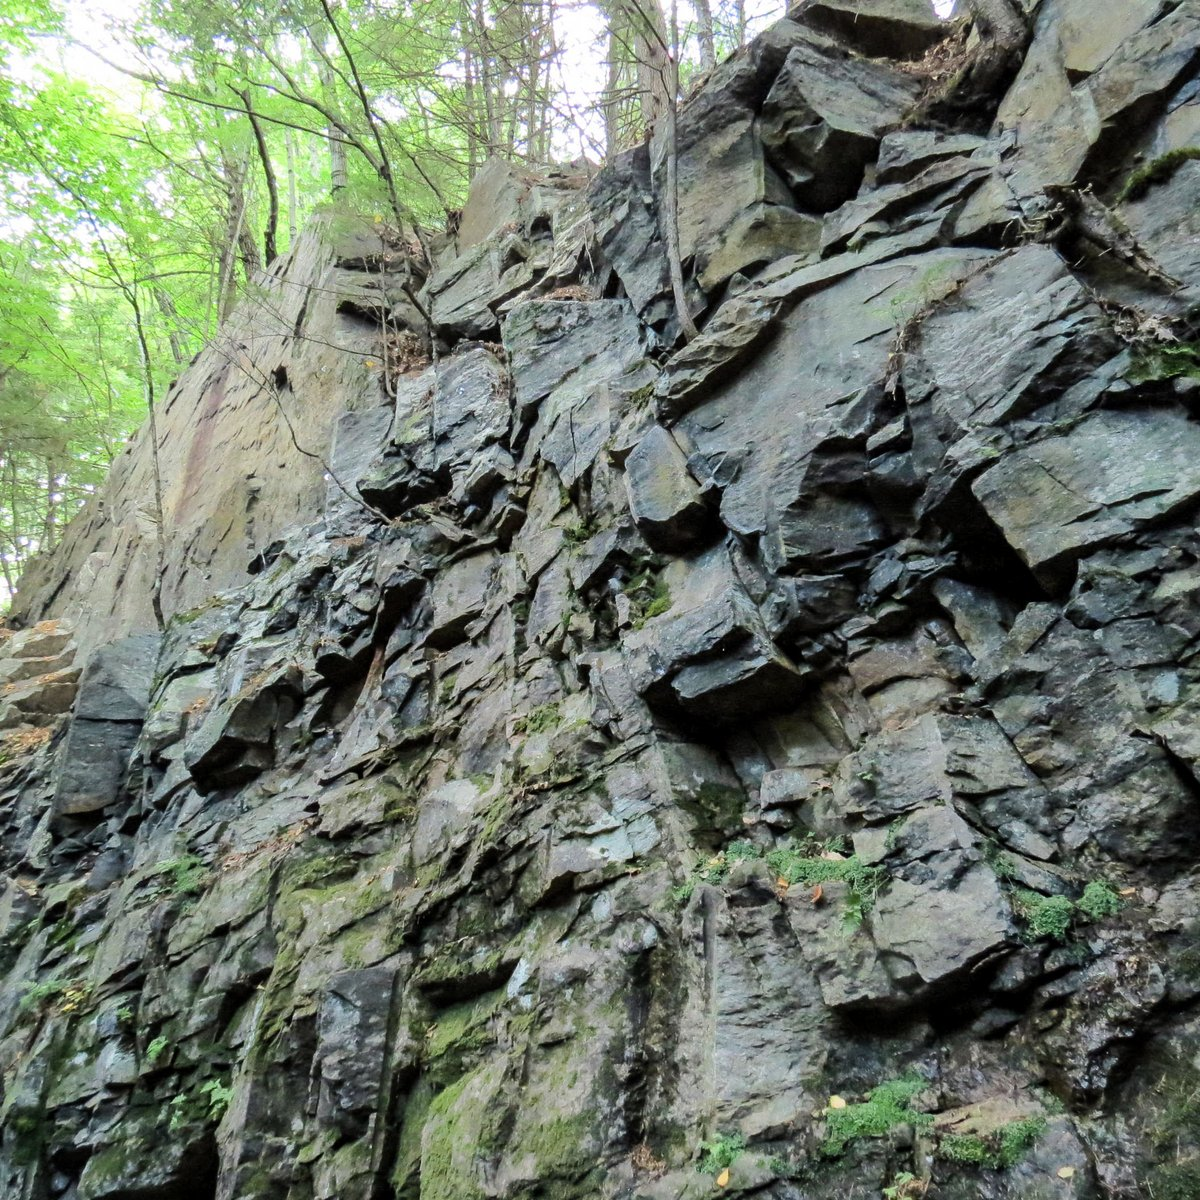 3. Cliff Face